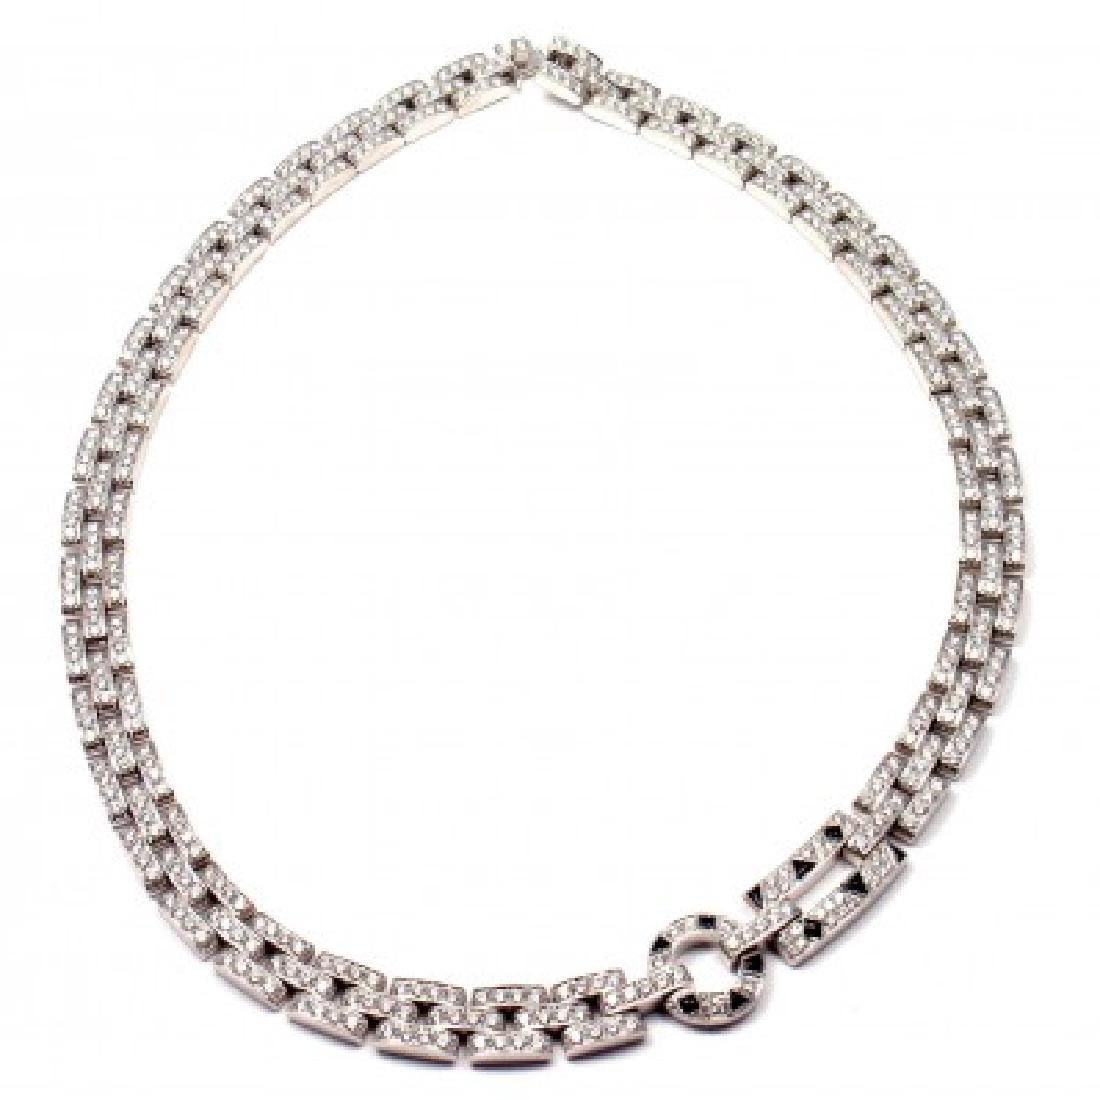 CARTIER PANTHERE MAILLON 18K DIAMOND ONYX NECKLACE